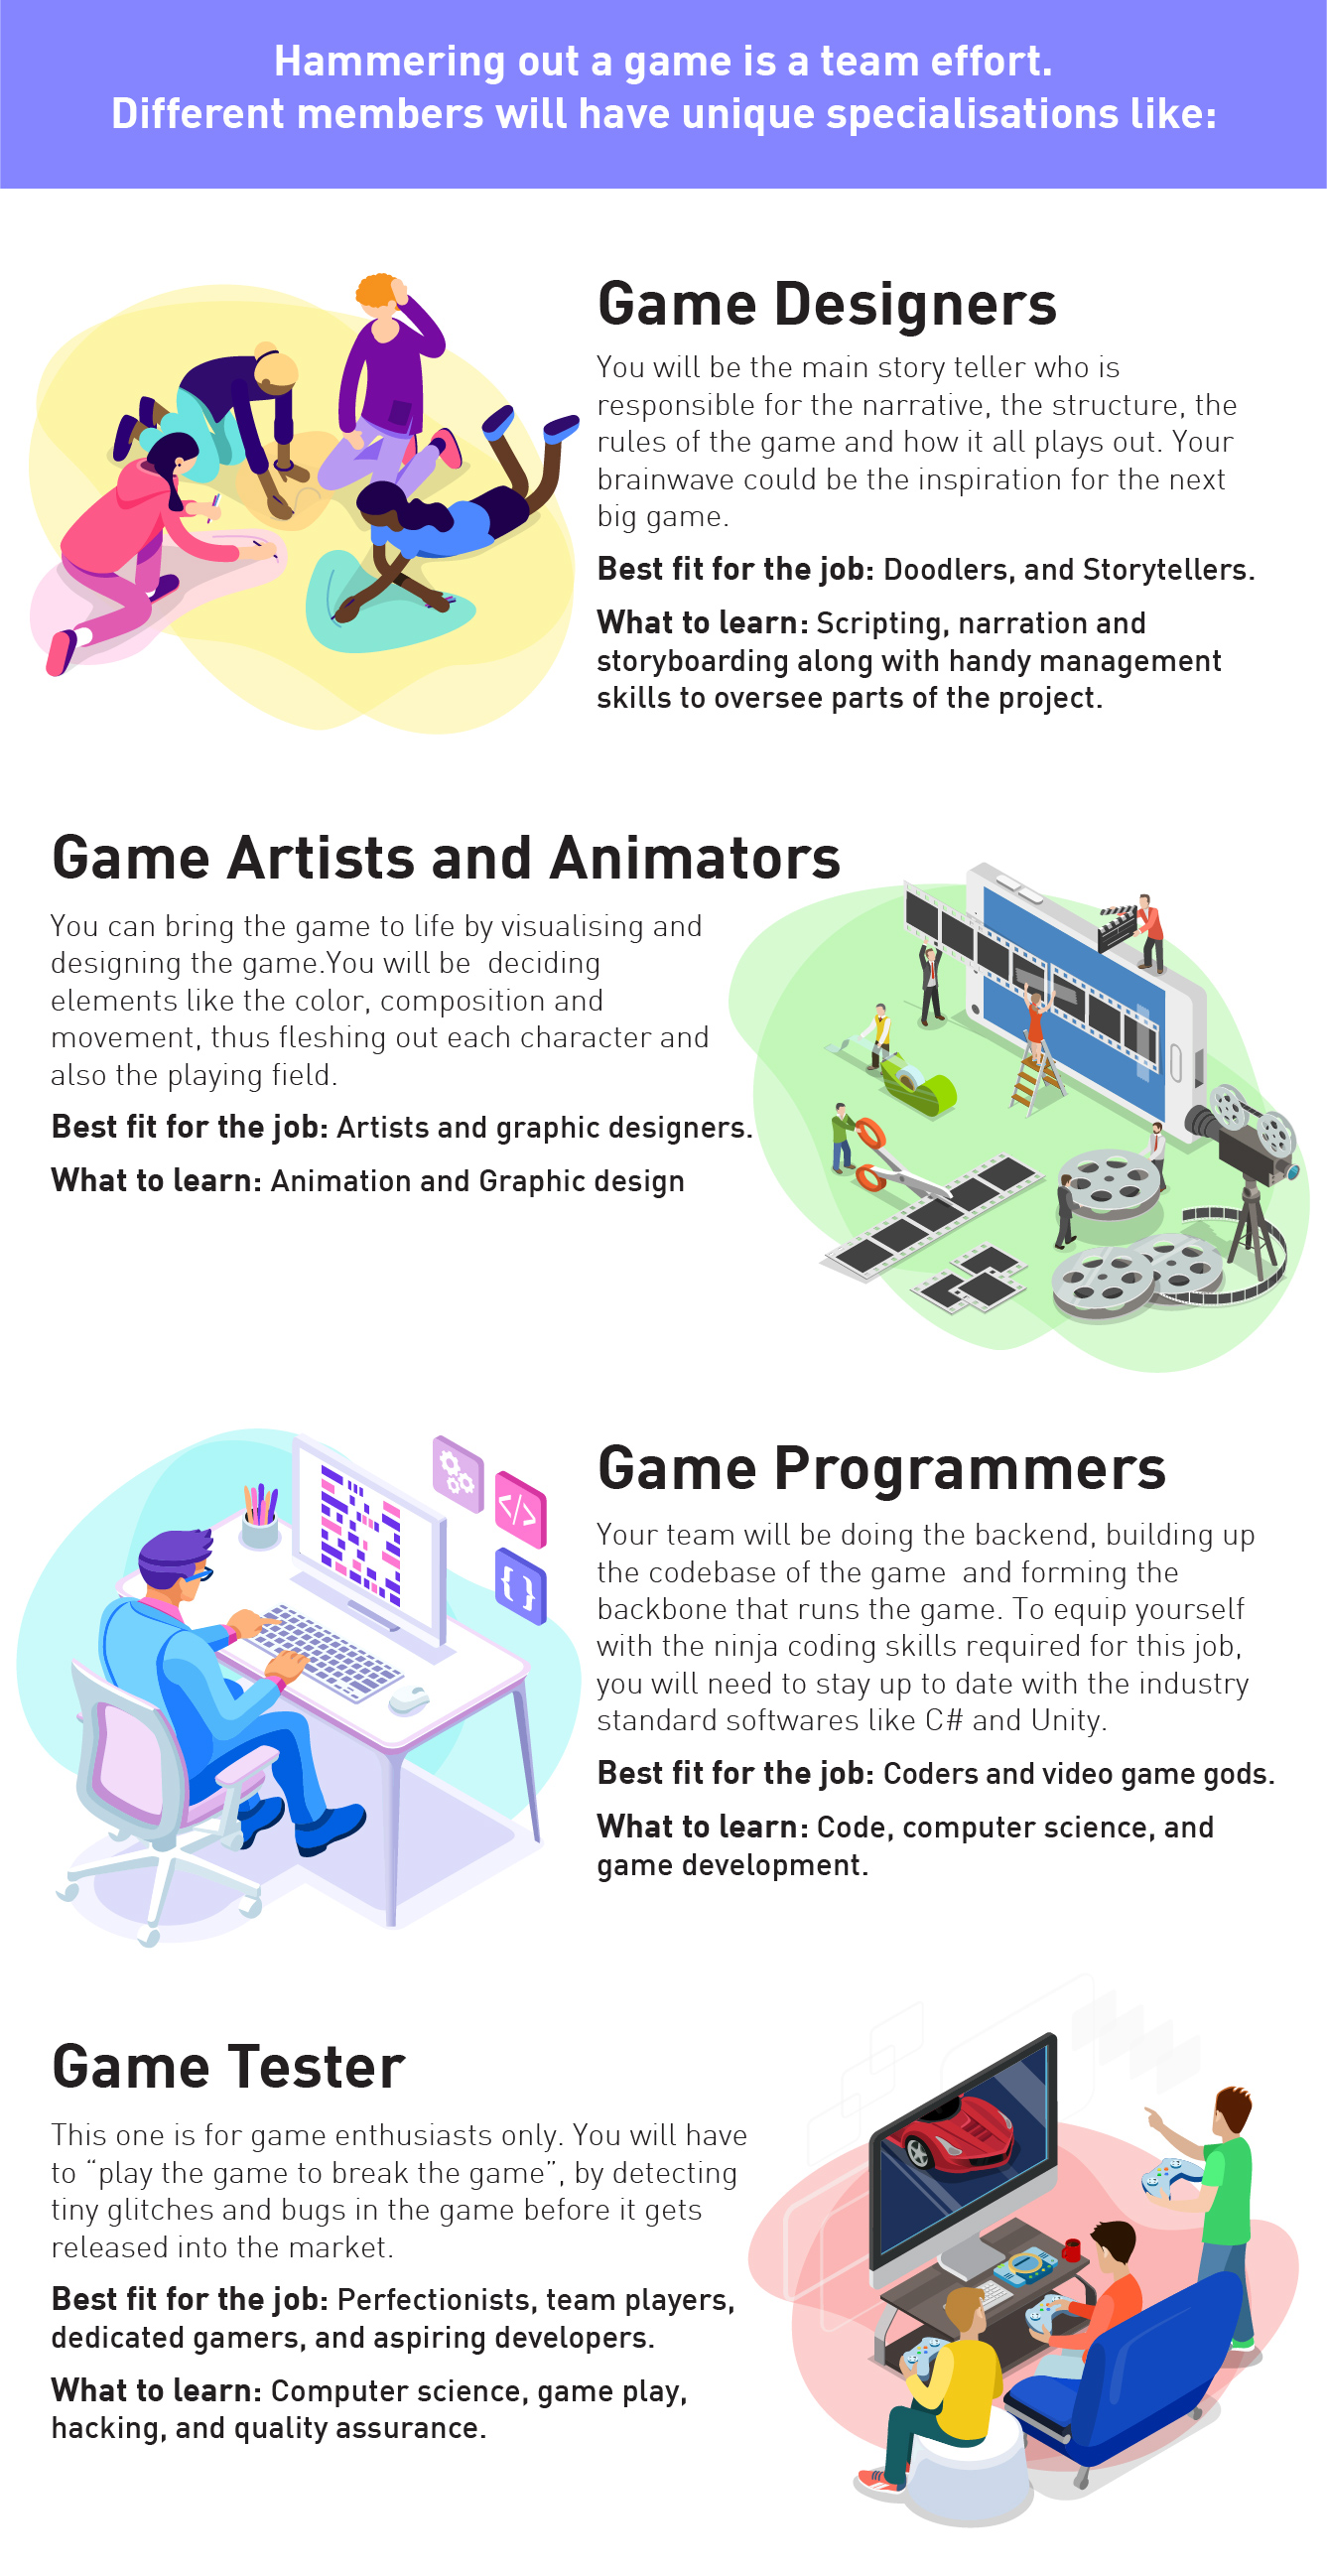 how to become a game developer, career in game development, gamer, jobs in gaming, colleges for gaming, what to study for game developement, future in game development, top companies in game development